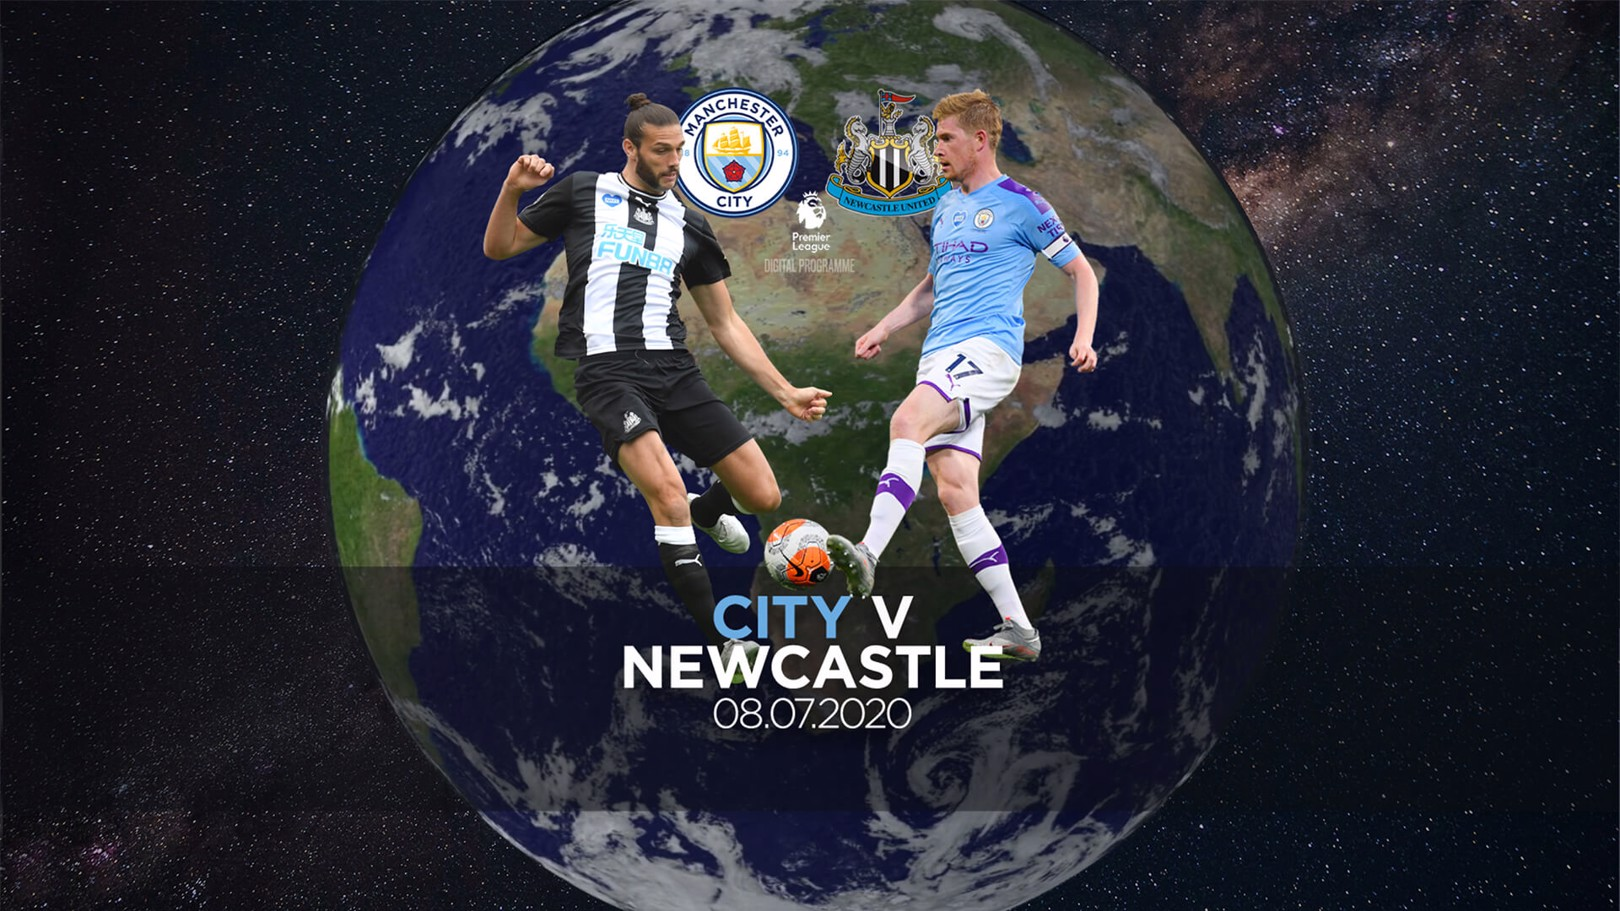 City v Newcastle: FREE digital matchday programme available now!